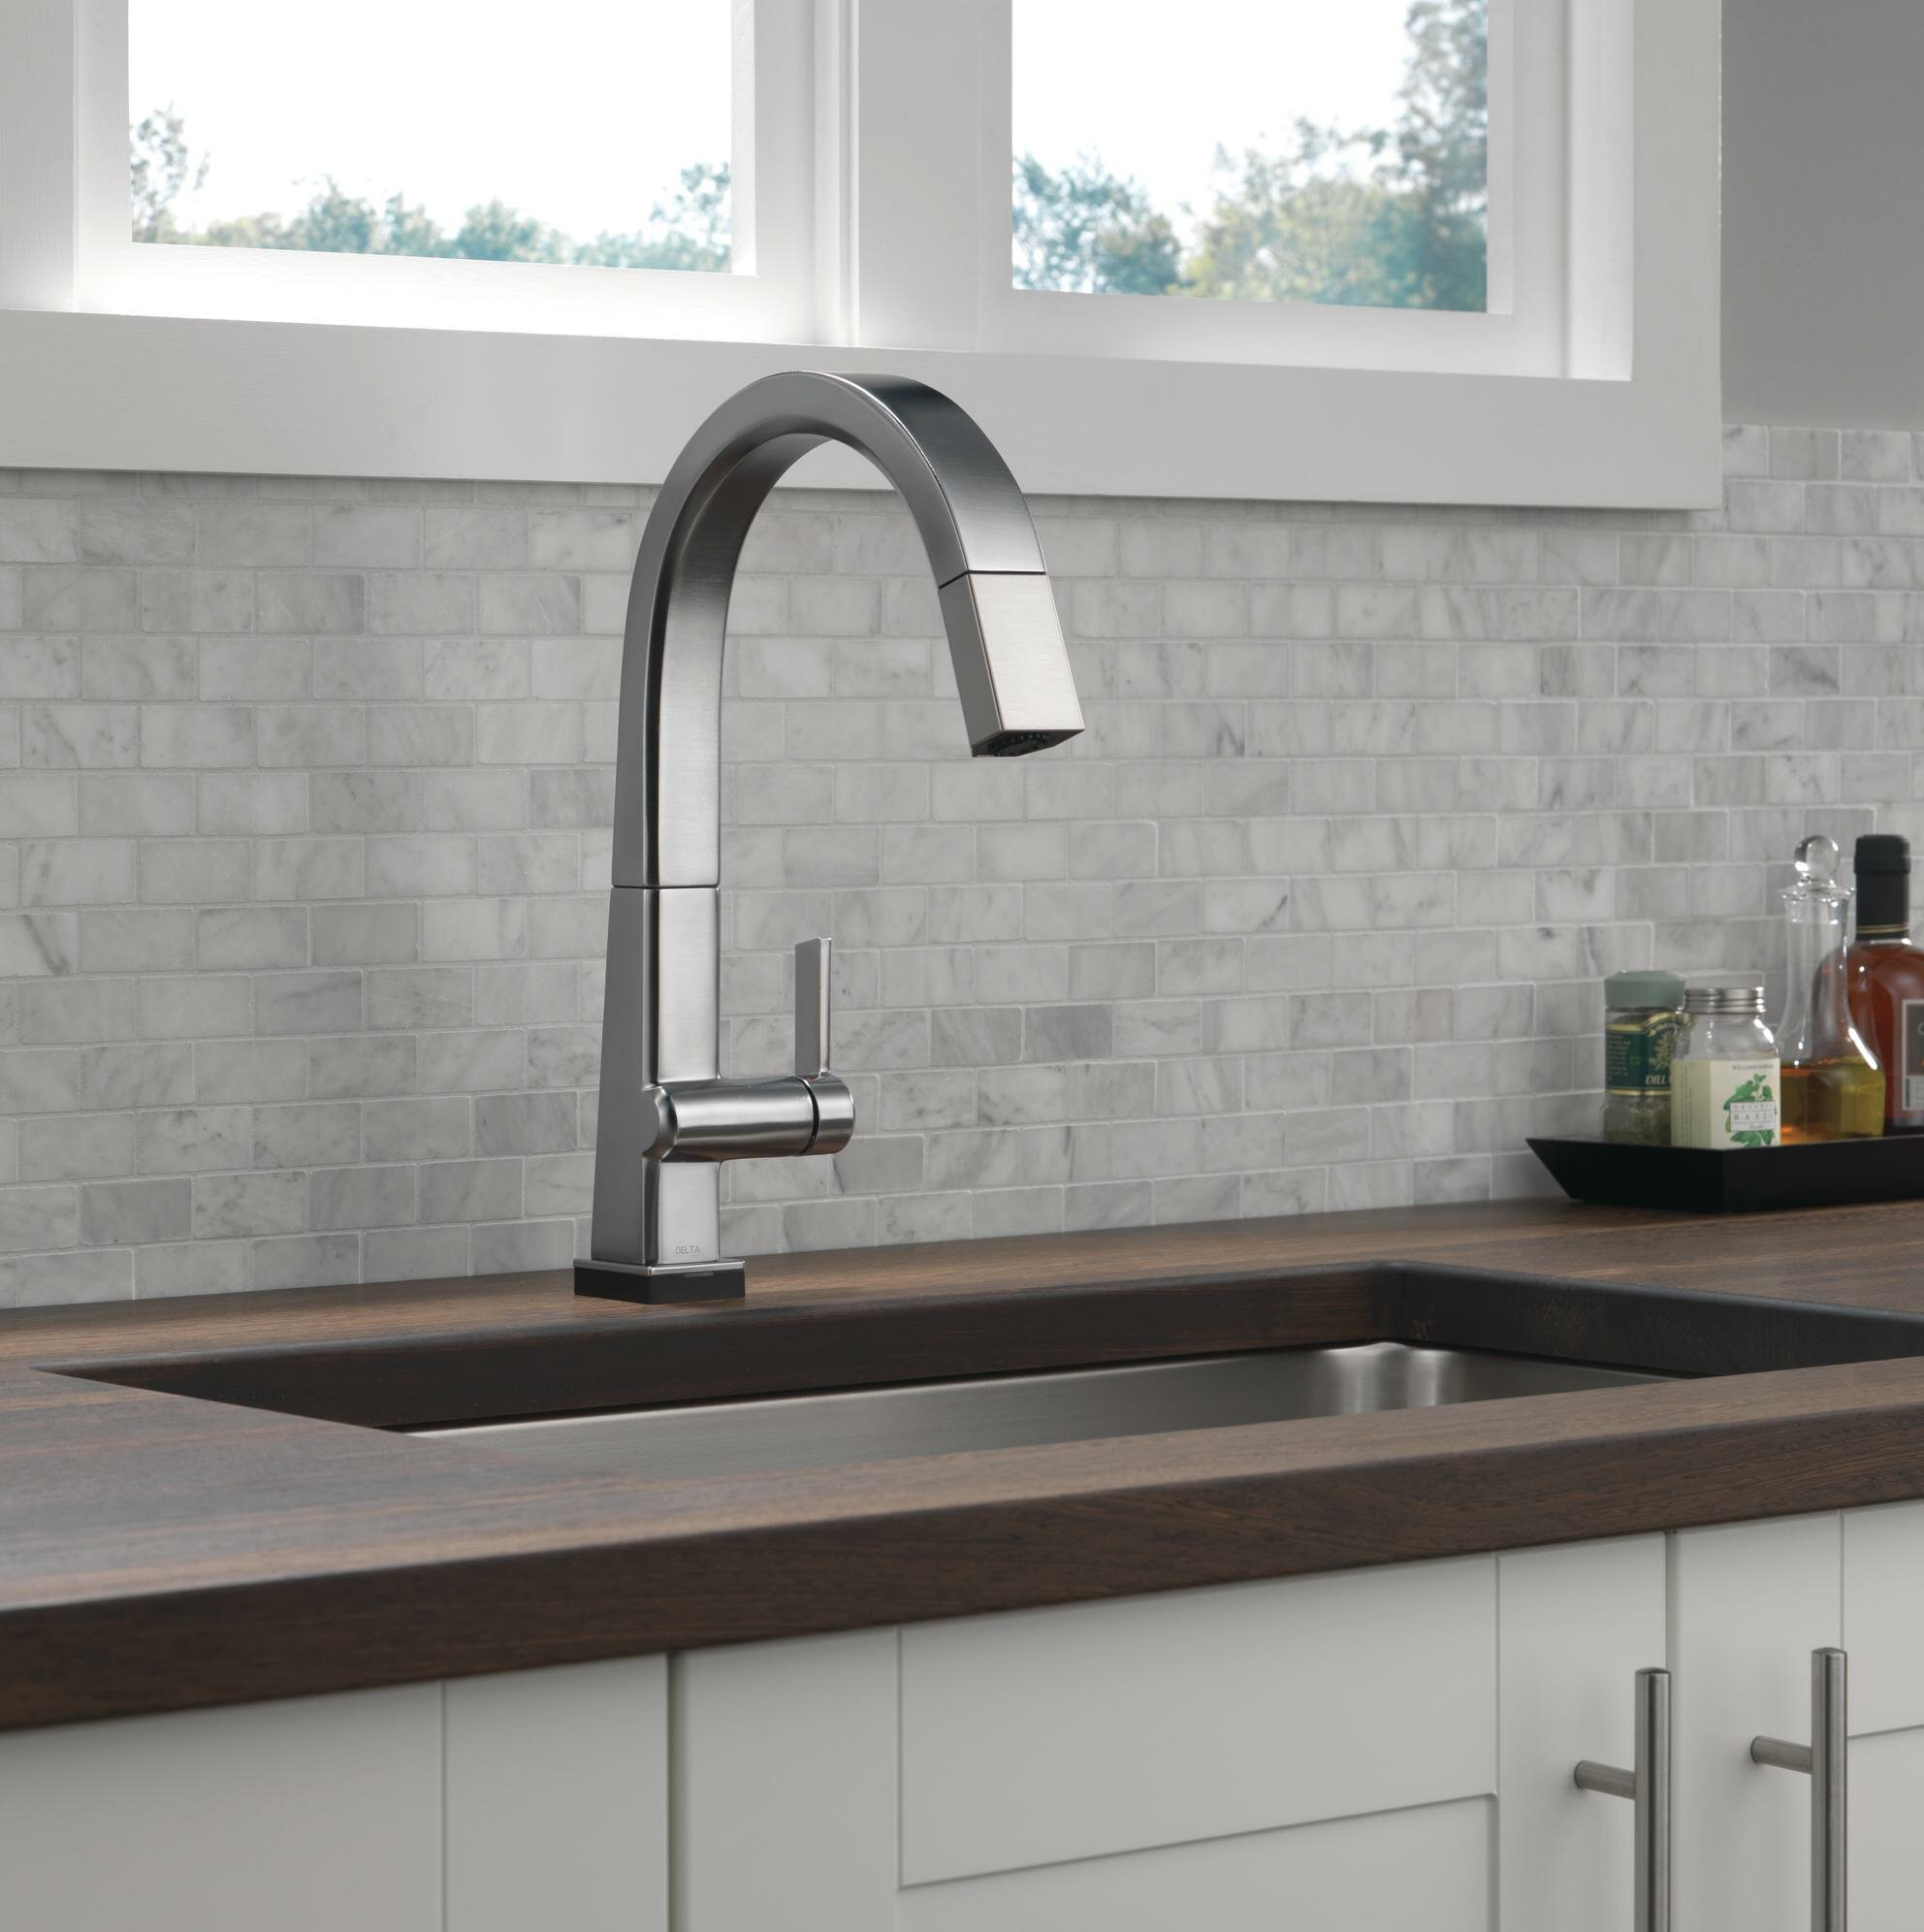 Pivotal Pull Down Touch Single Handle Kitchen Faucet with Touch20 Technology